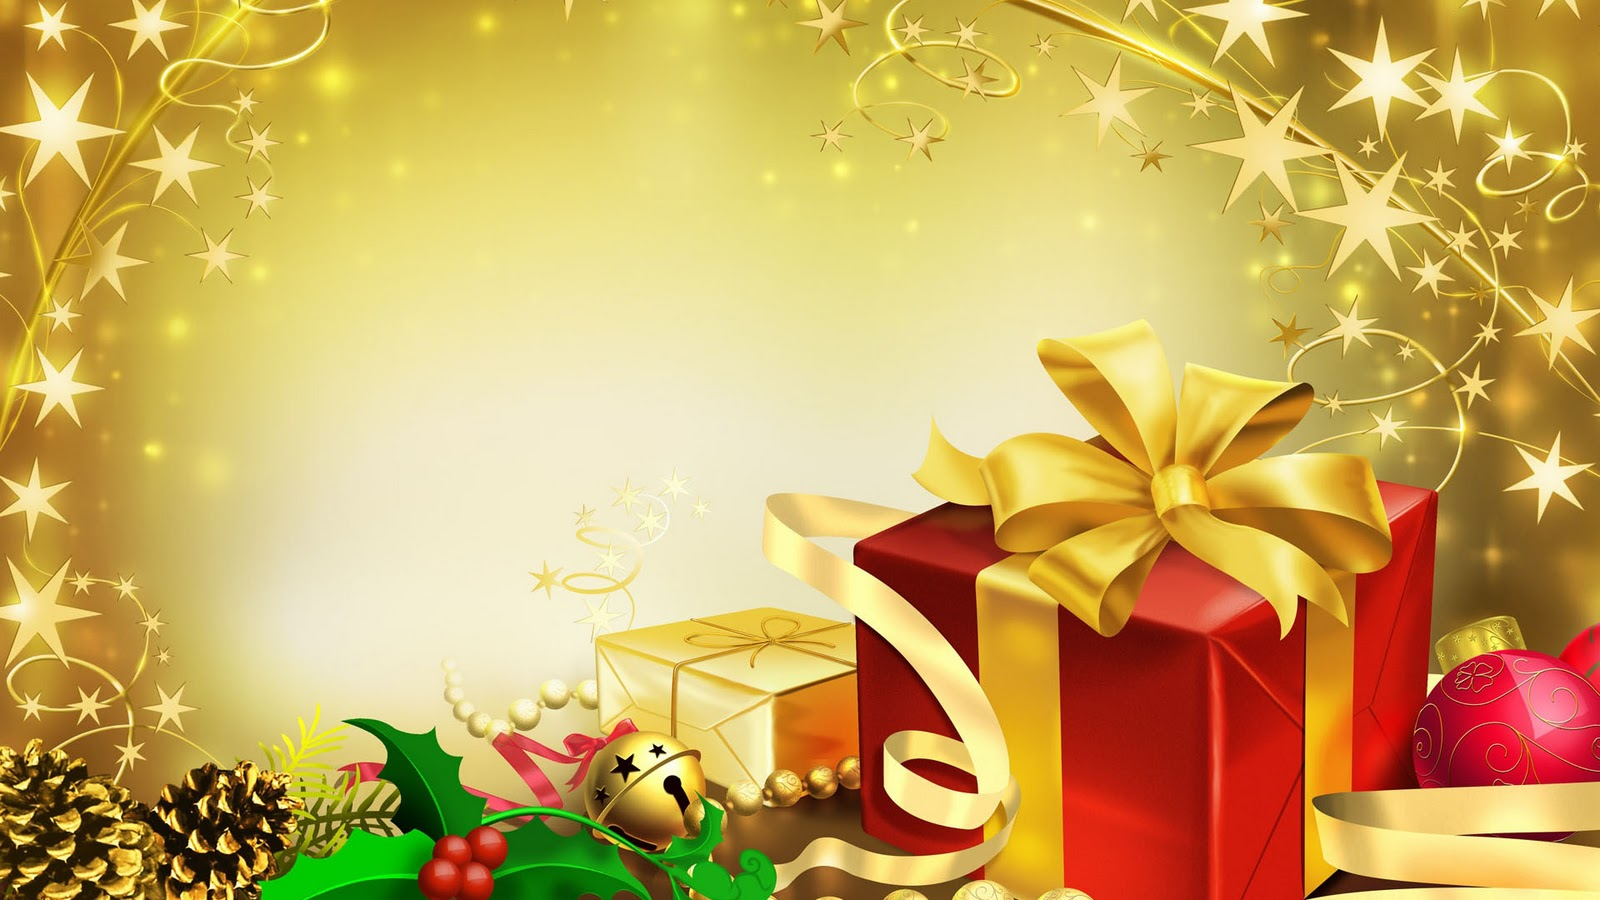 Best-top-desktop-beautiful-christmas-wallpapers-nice-hd-christmas-wallpaper-picture-image-photo-1